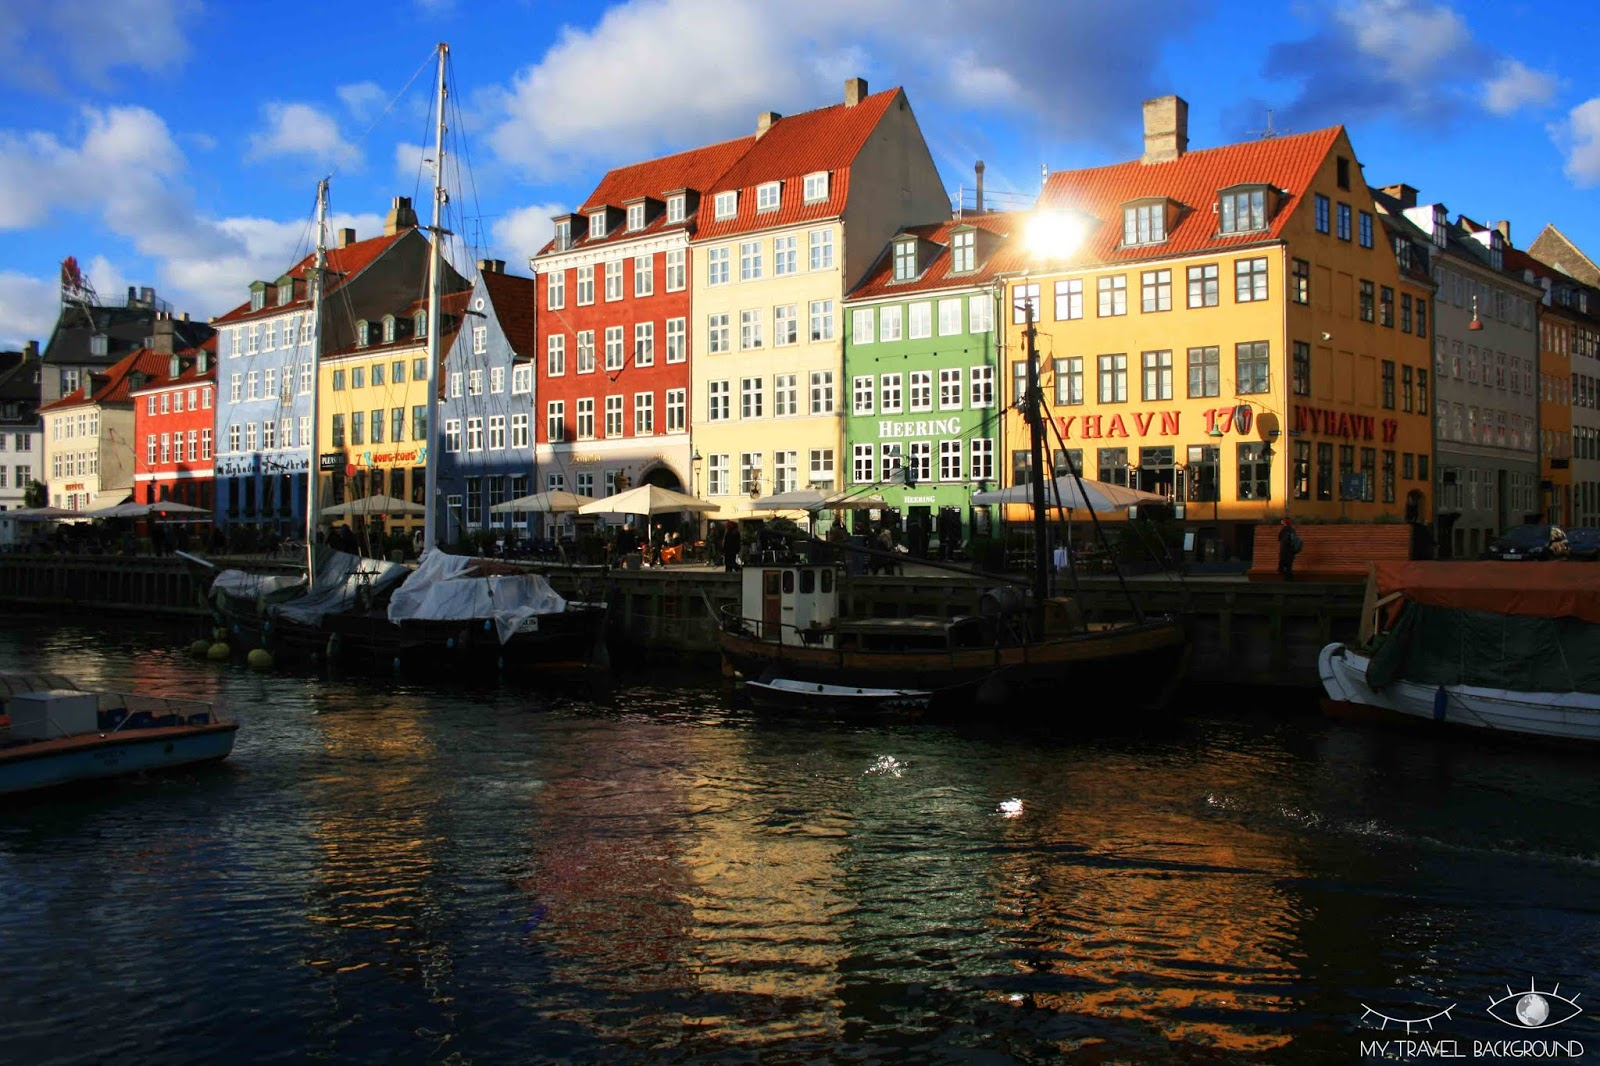 My Travel Background : carte postale du Danemark - Copenhague